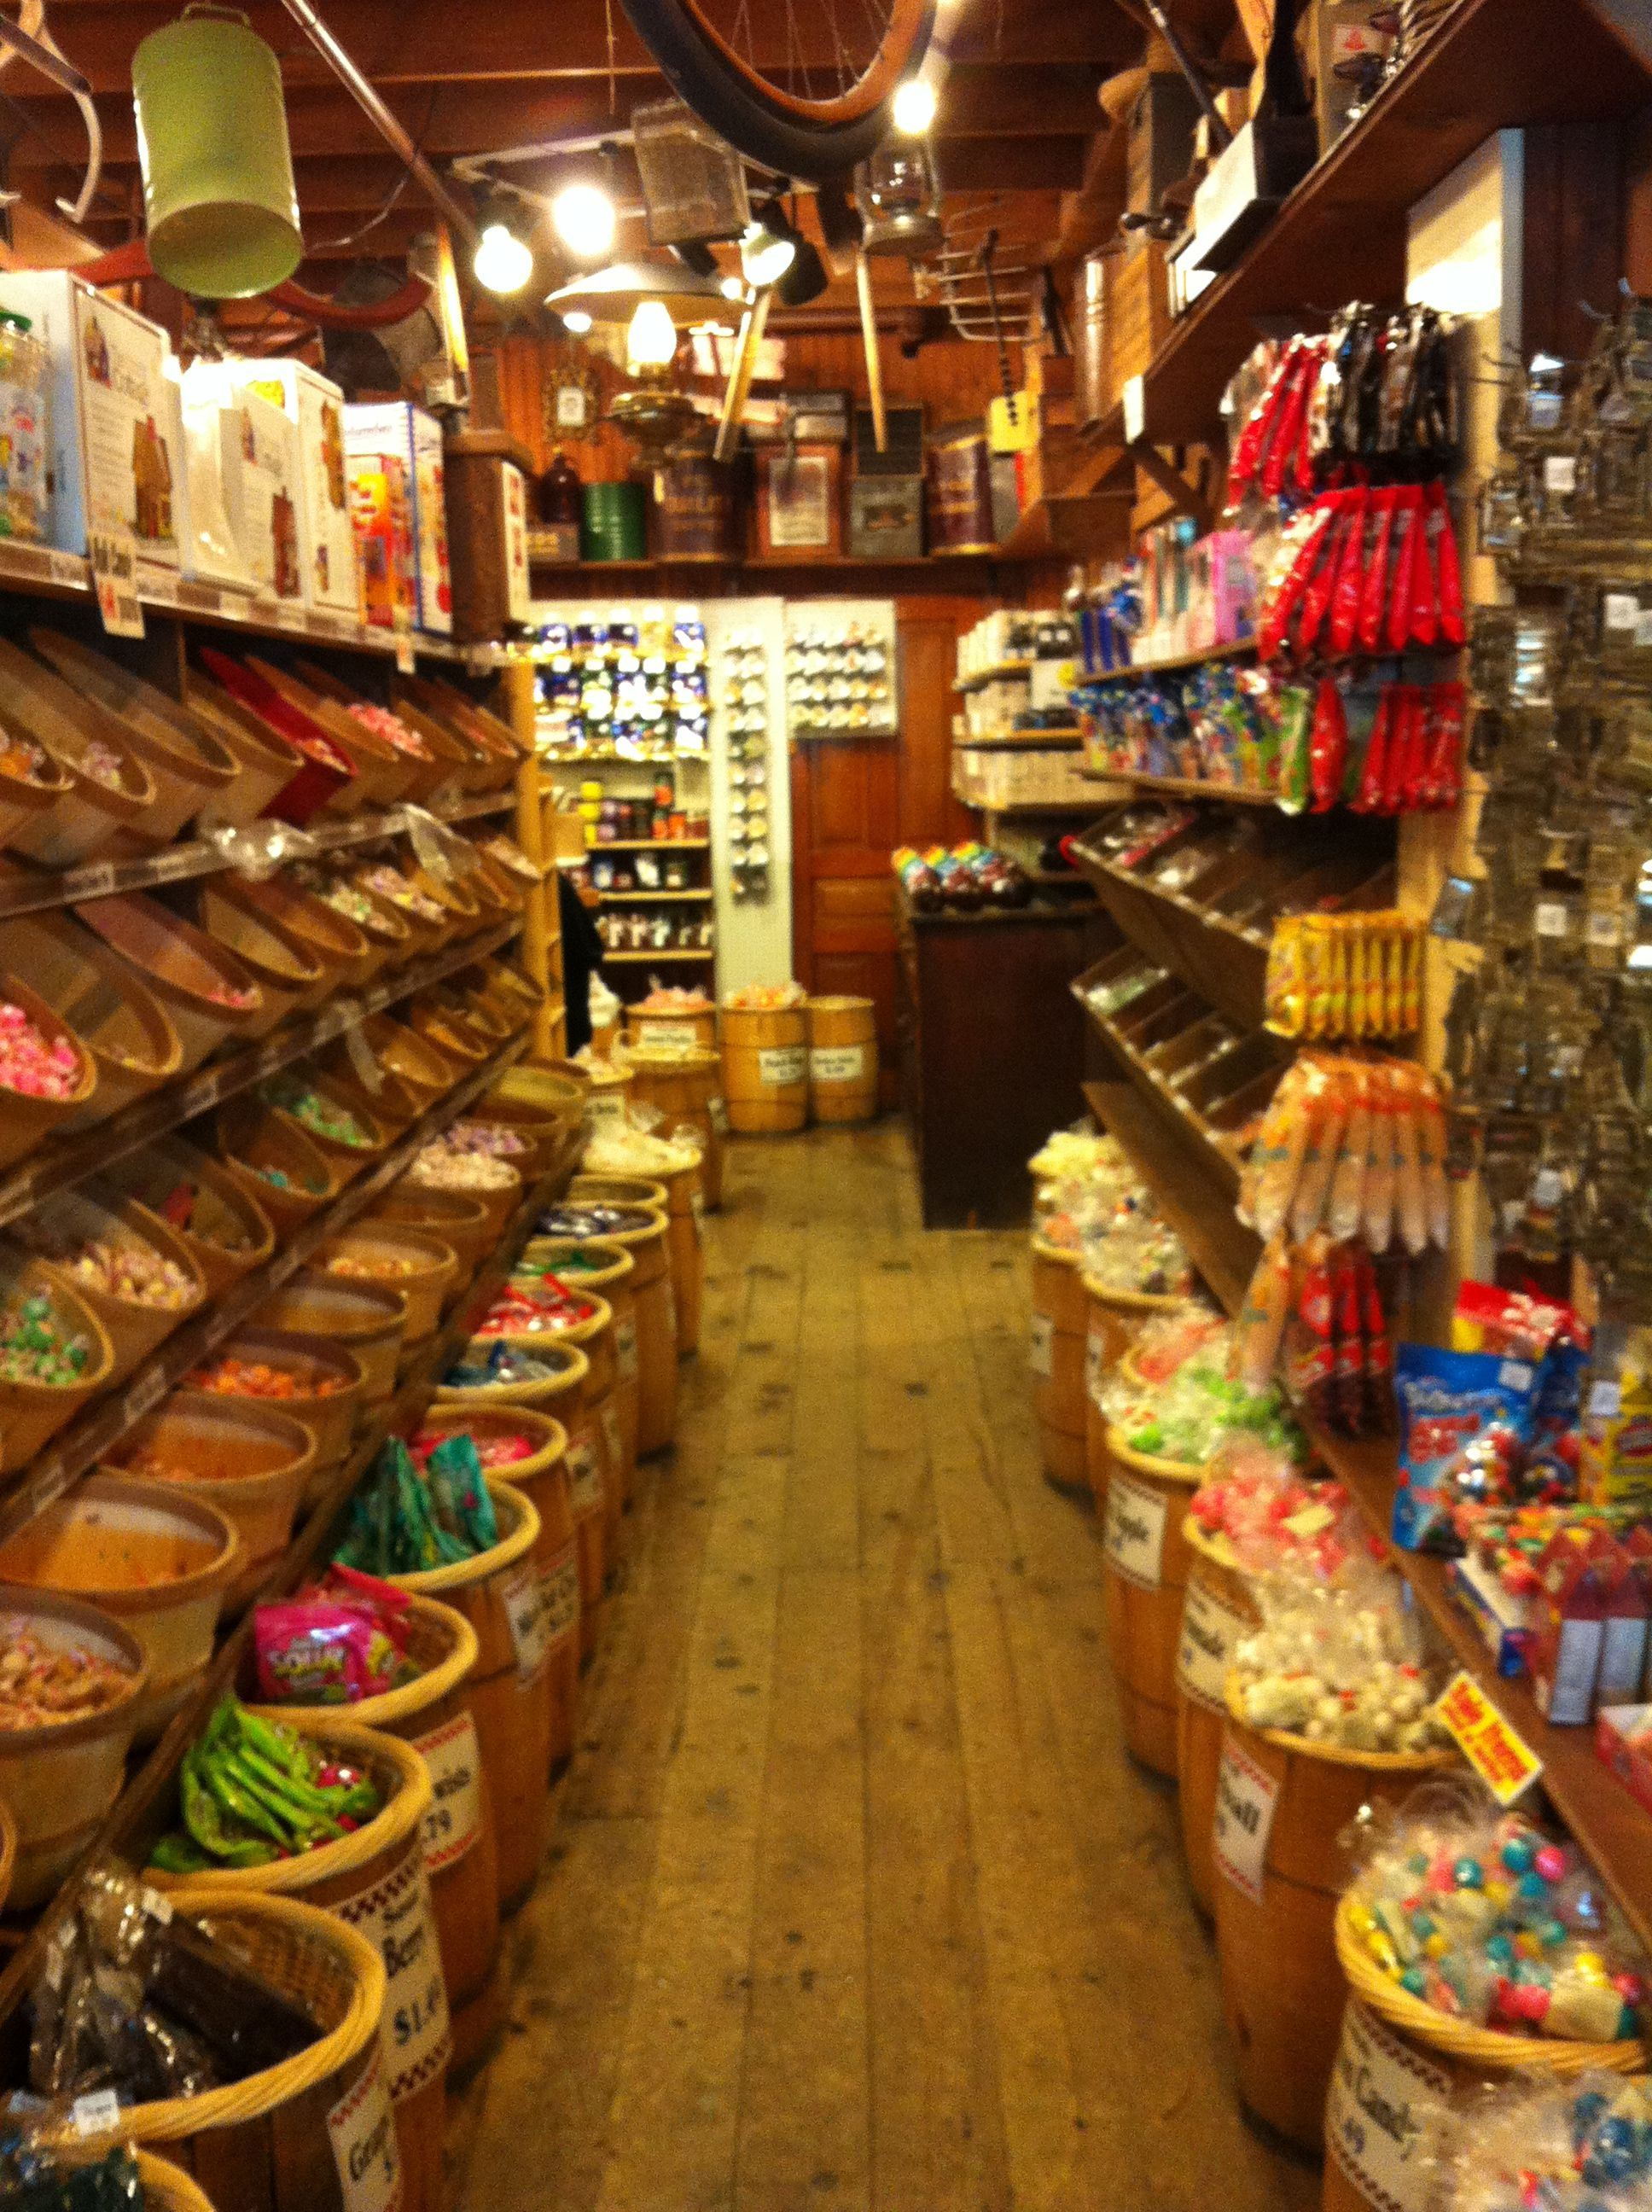 Now This Is An Old Time Candy Store Rau S Country Store Frankenmuth Michigan Actually Much More Than Candy Candy Store Display Candy Store Country Store